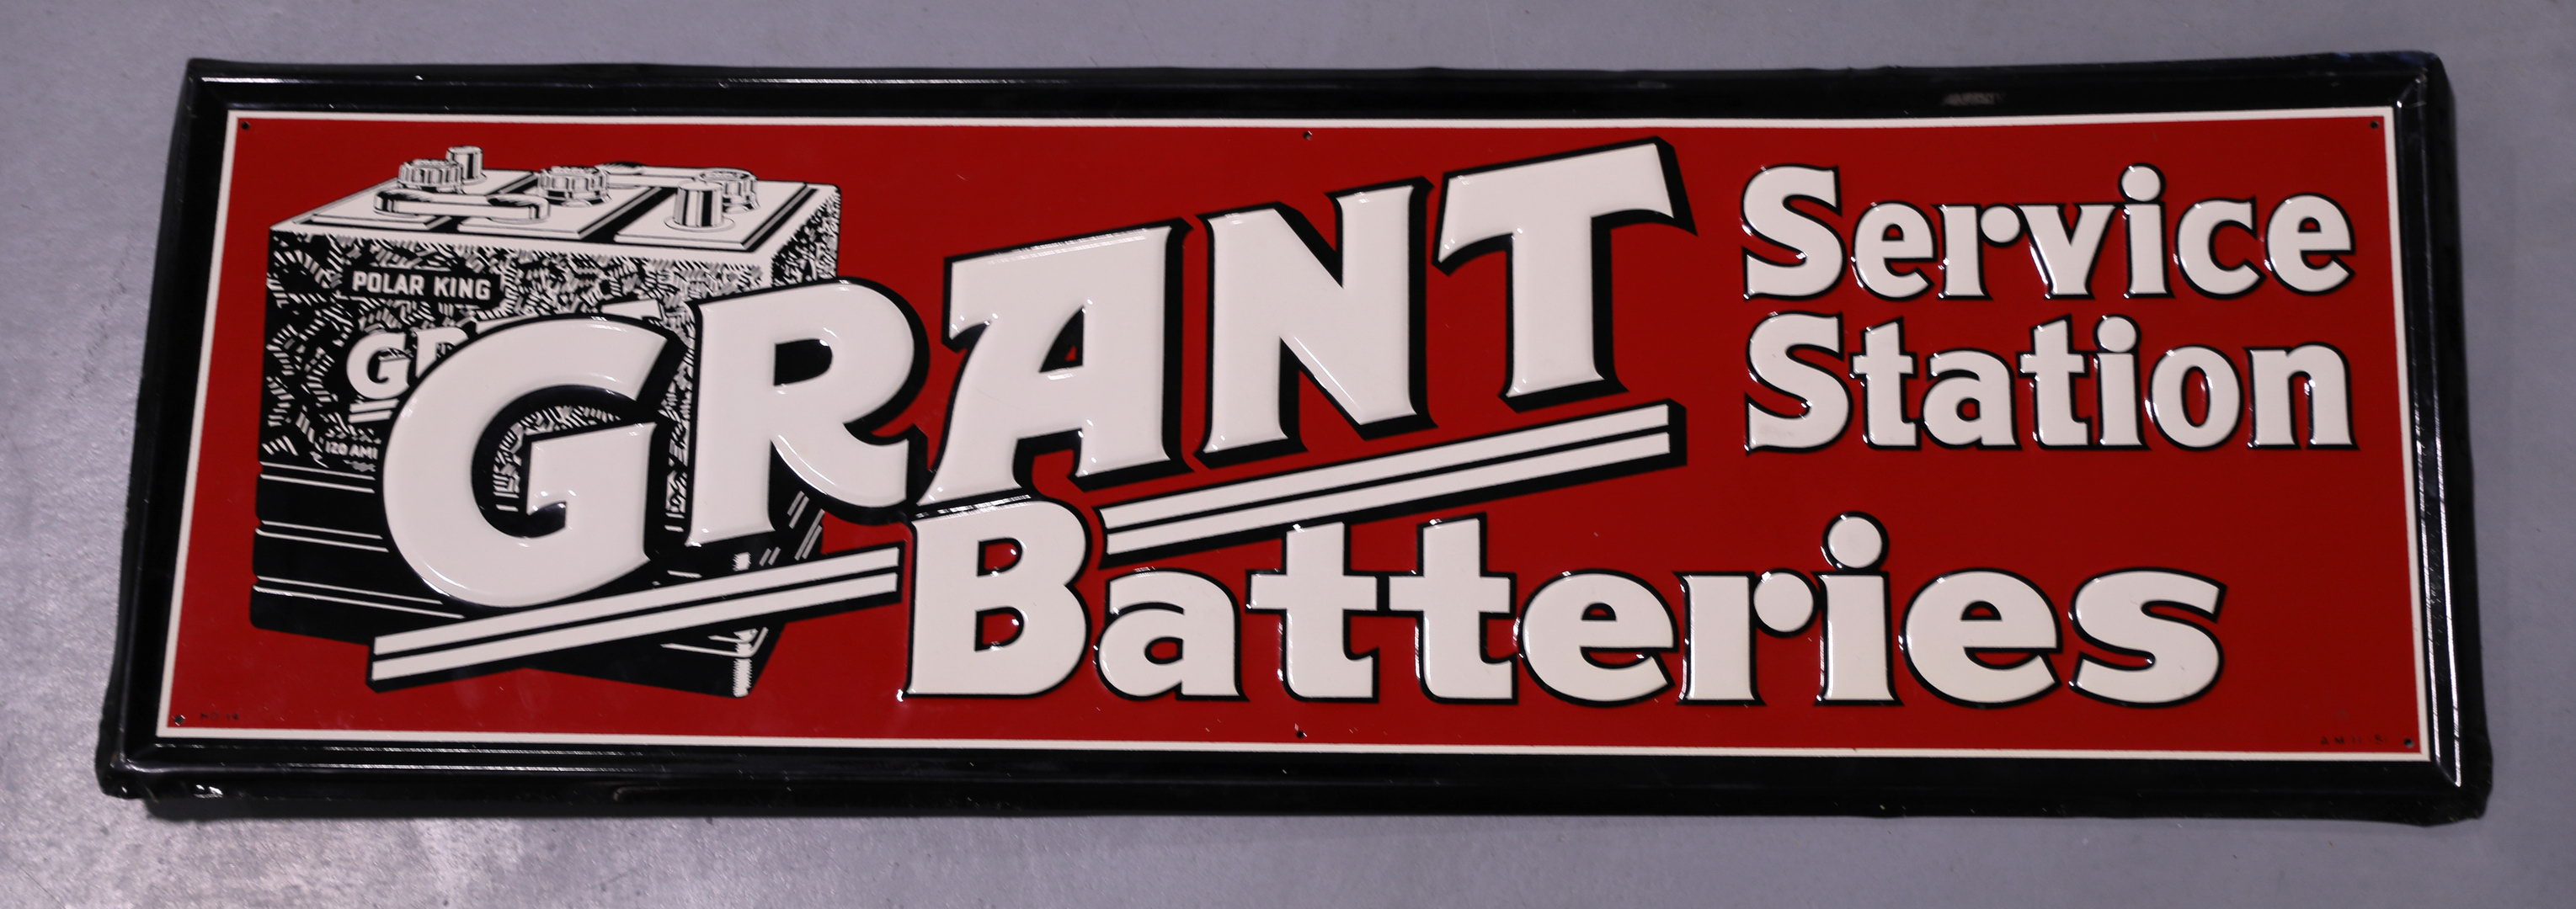 Grant Service Station Batteries Embossed Tin Sign